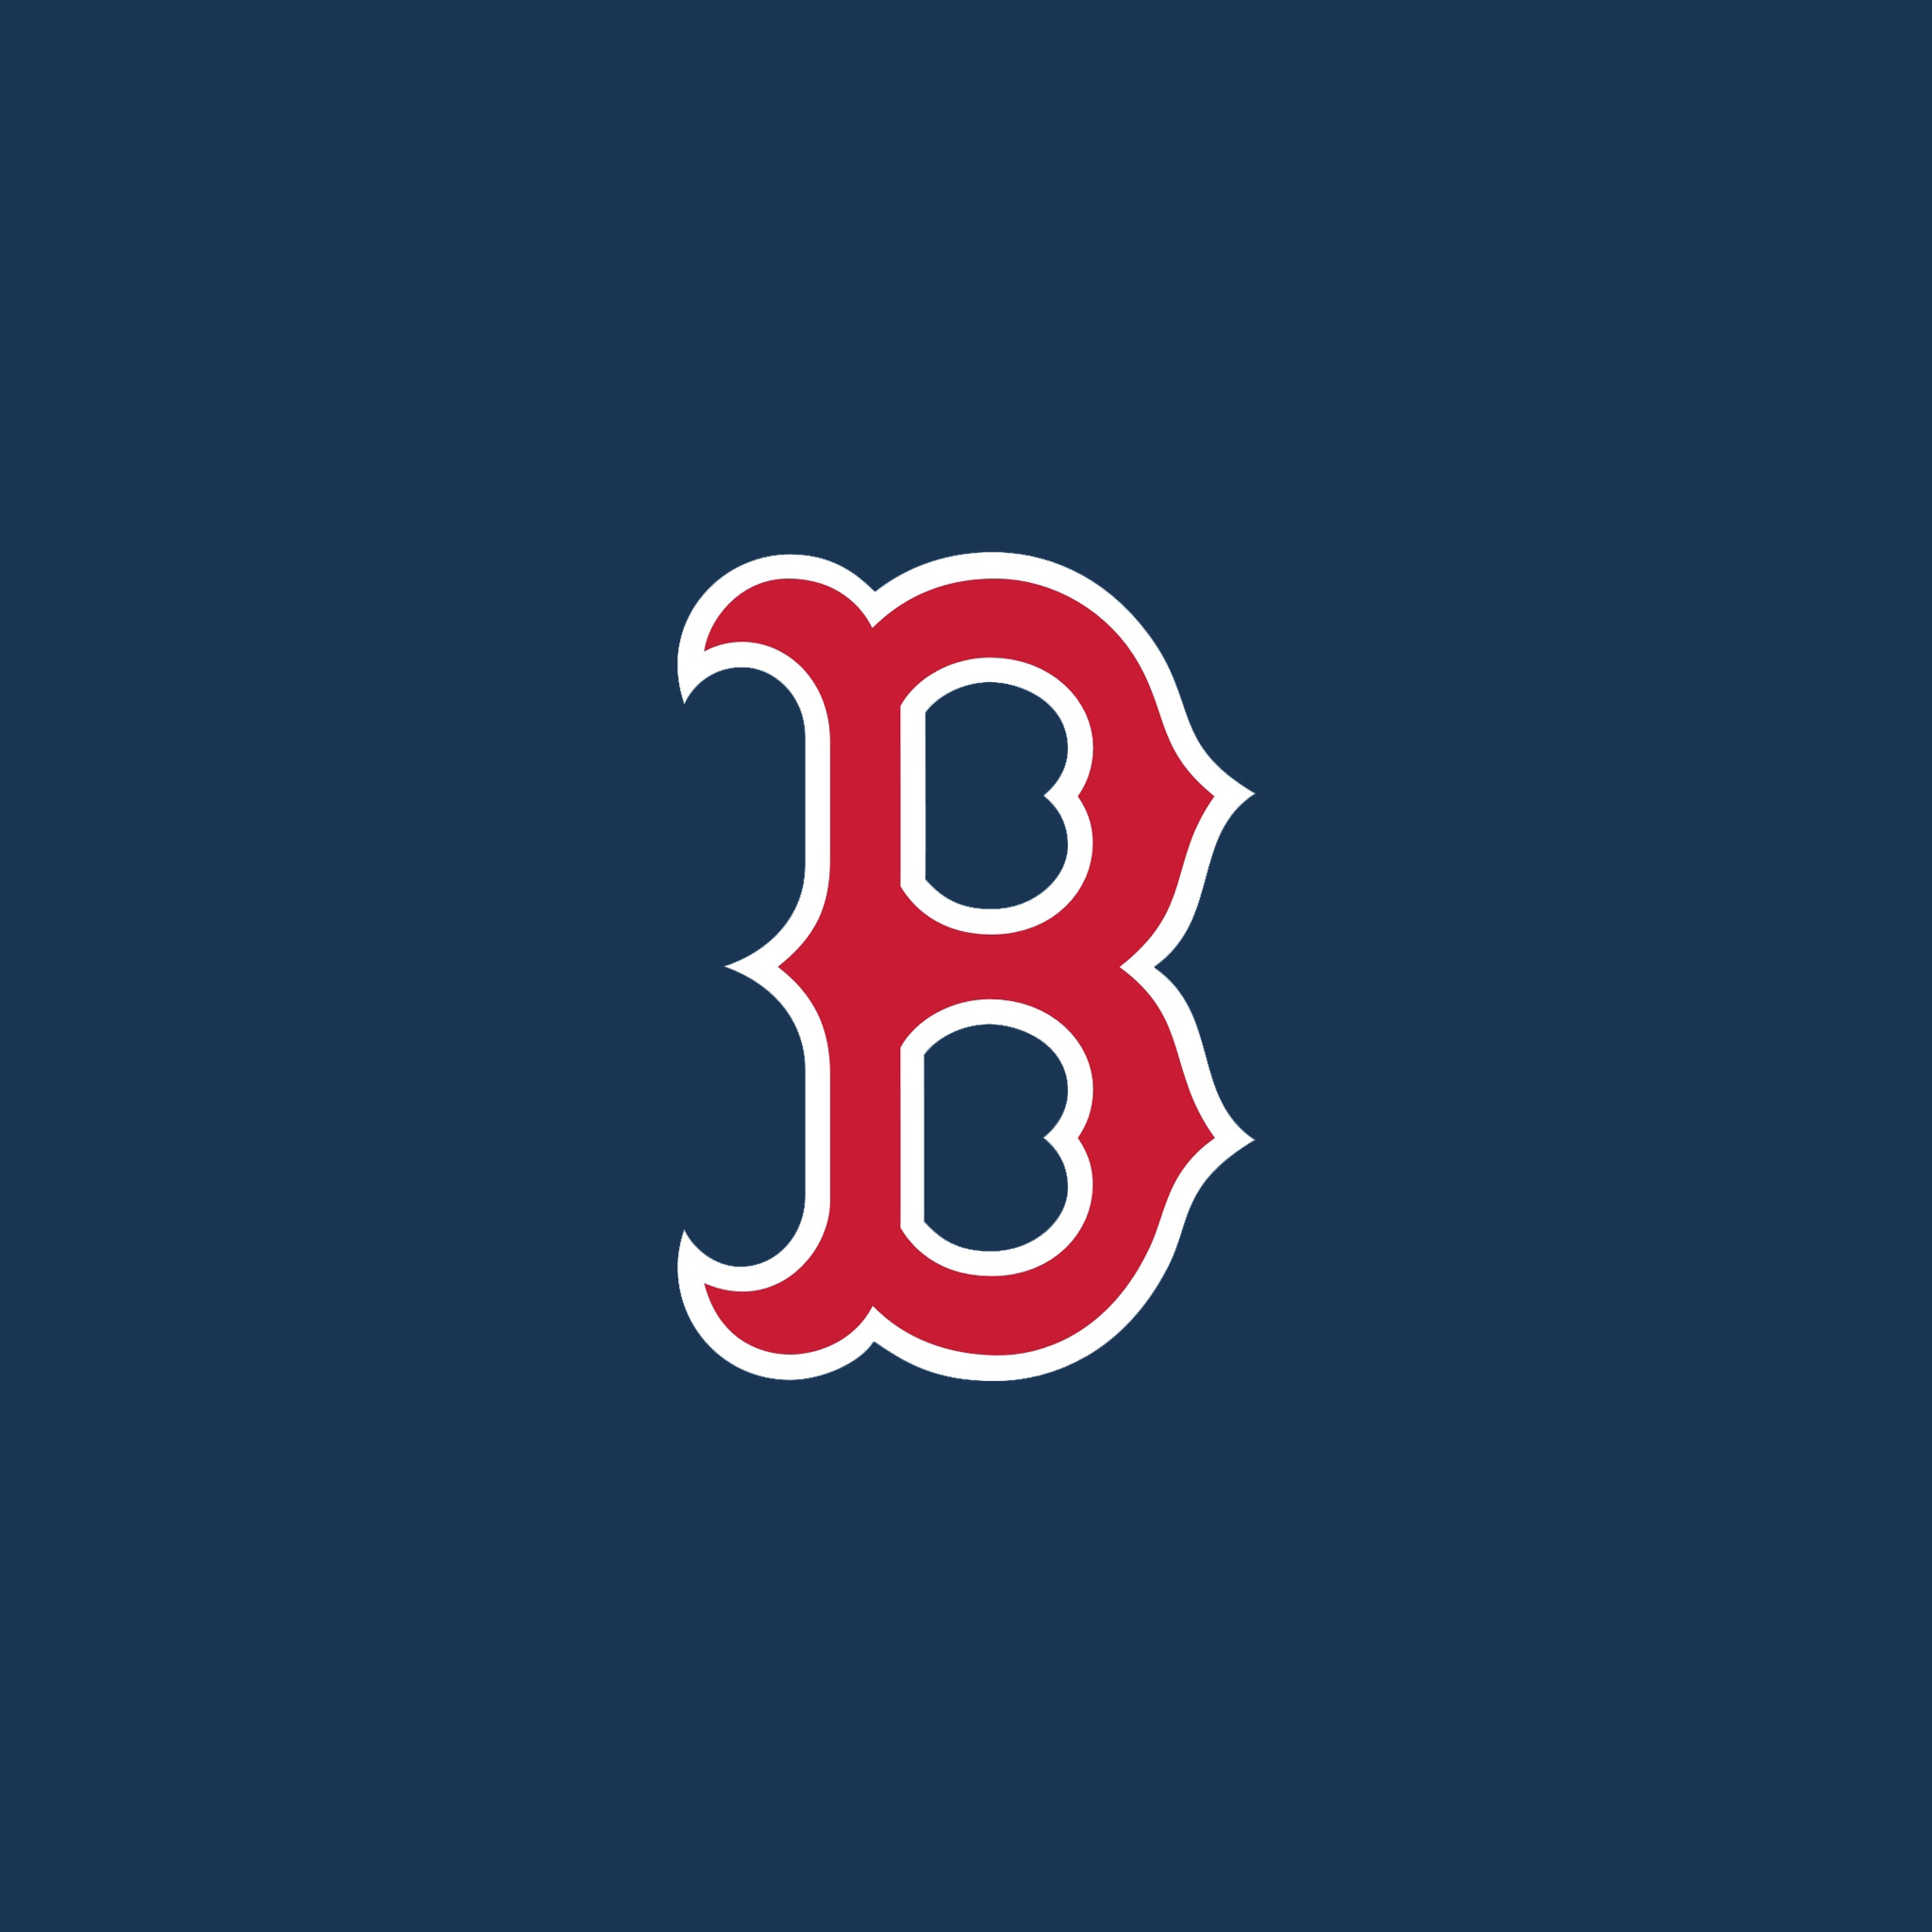 Boston red sox wallpaper Wallpaper Wide HD 2048x2048